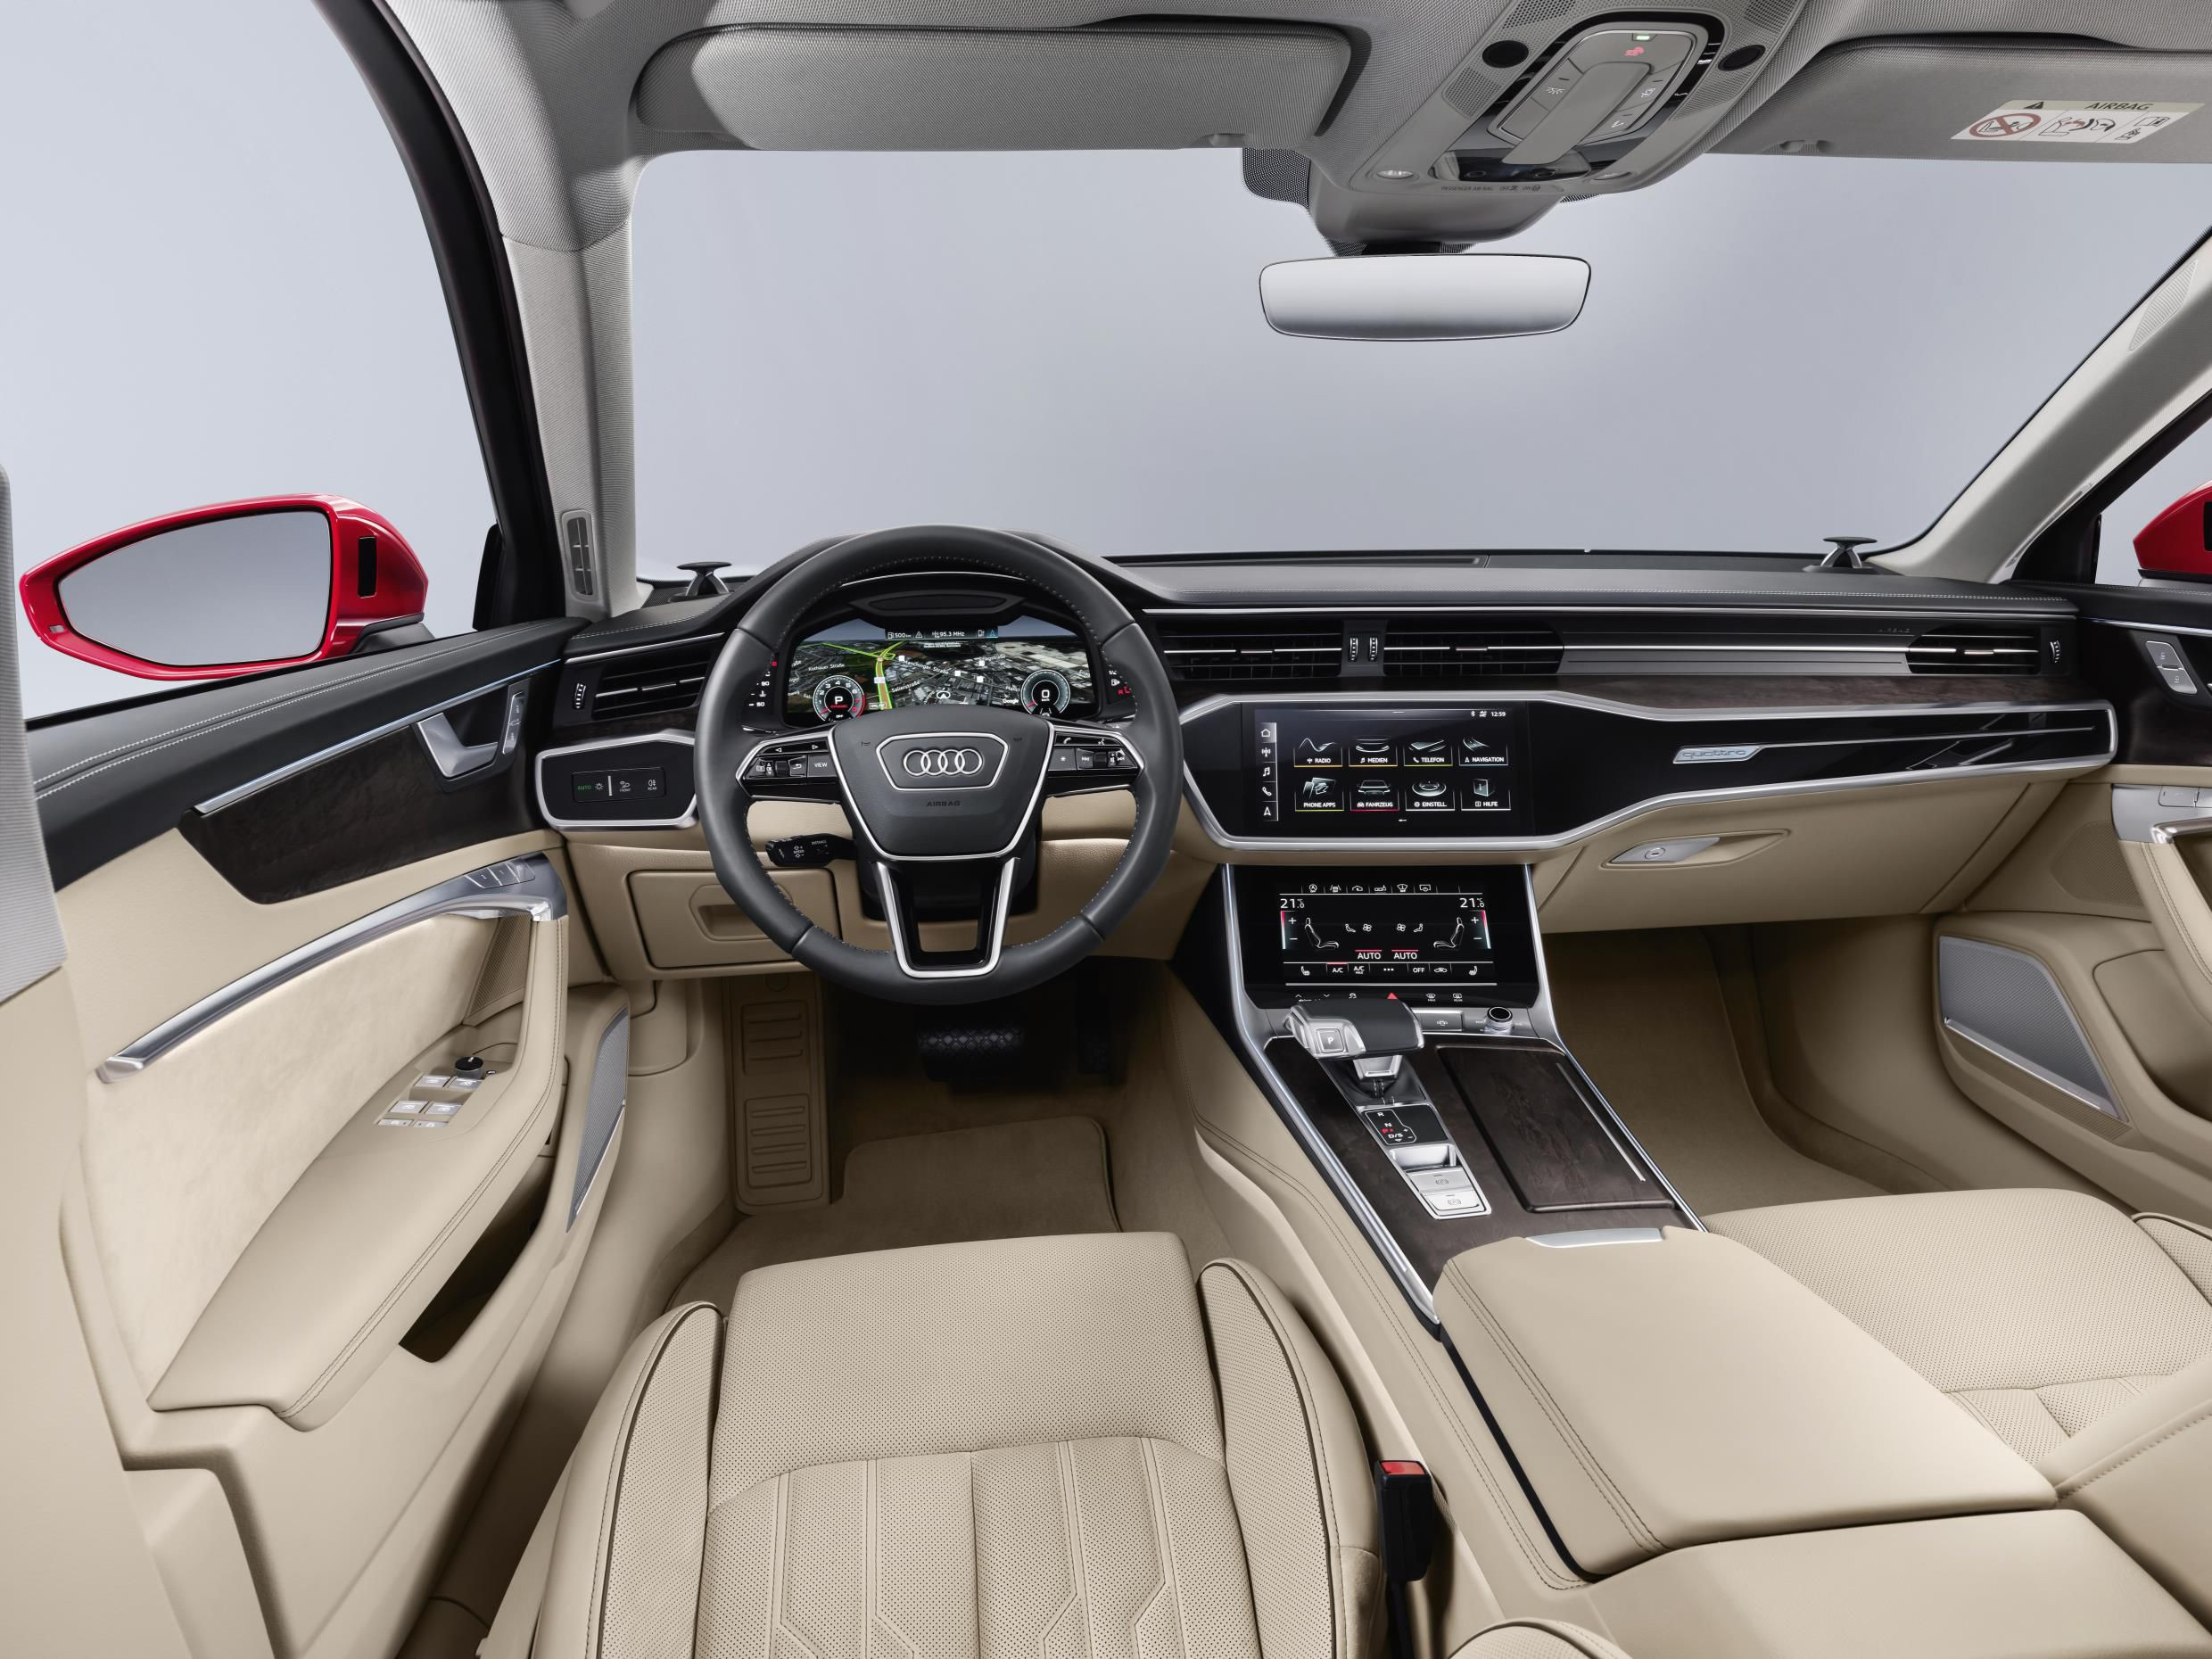 Cream leather interior of red Audi A6